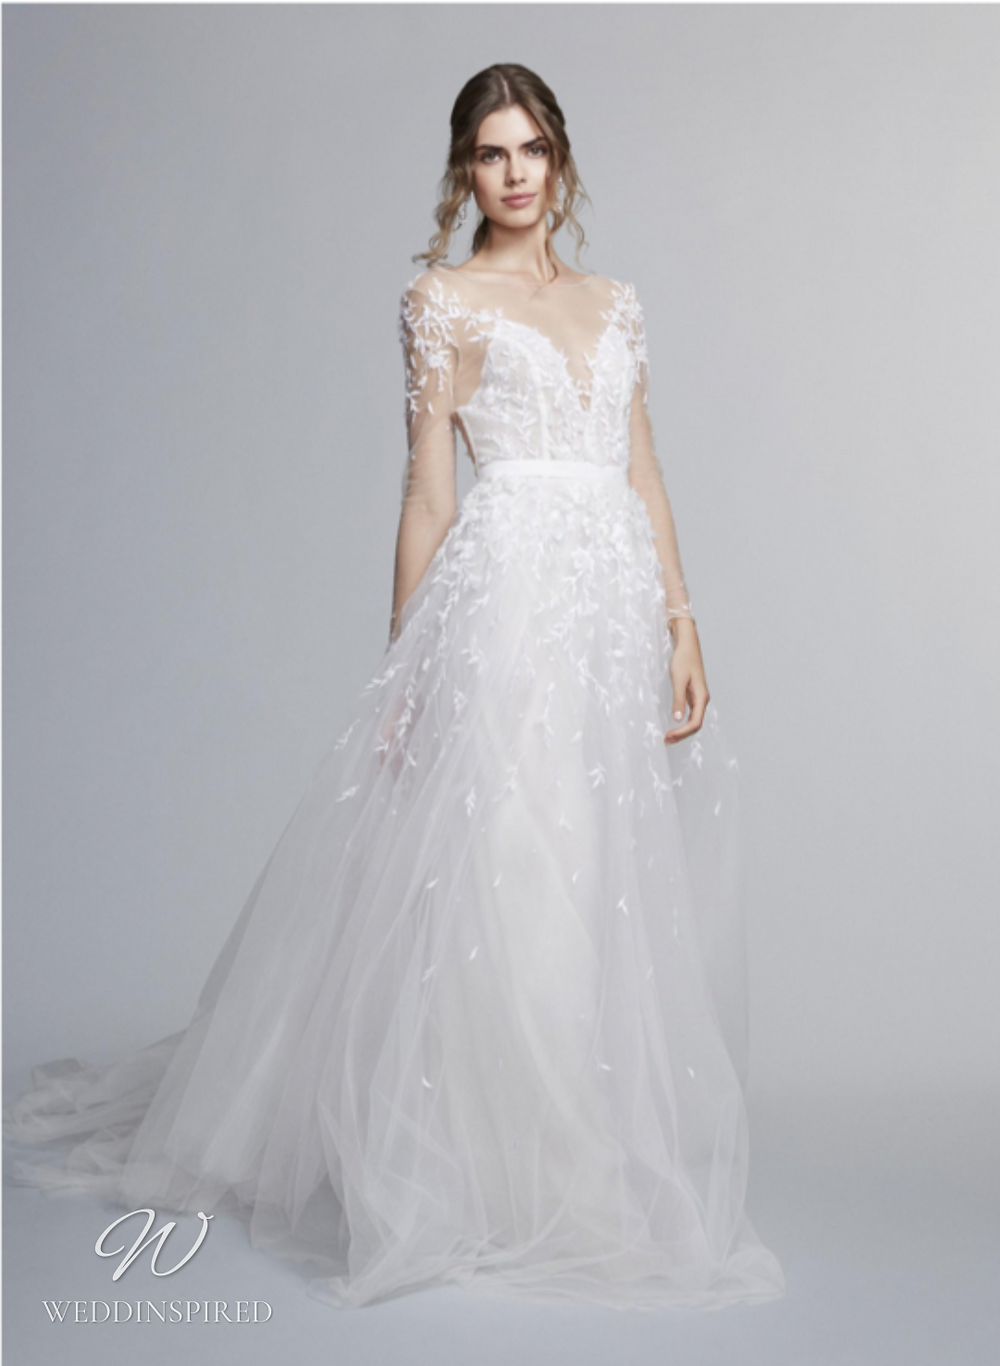 A Marchesa Notte Fall 2021 lace and tulle A-line wedding dress with long sleeves and a v neck